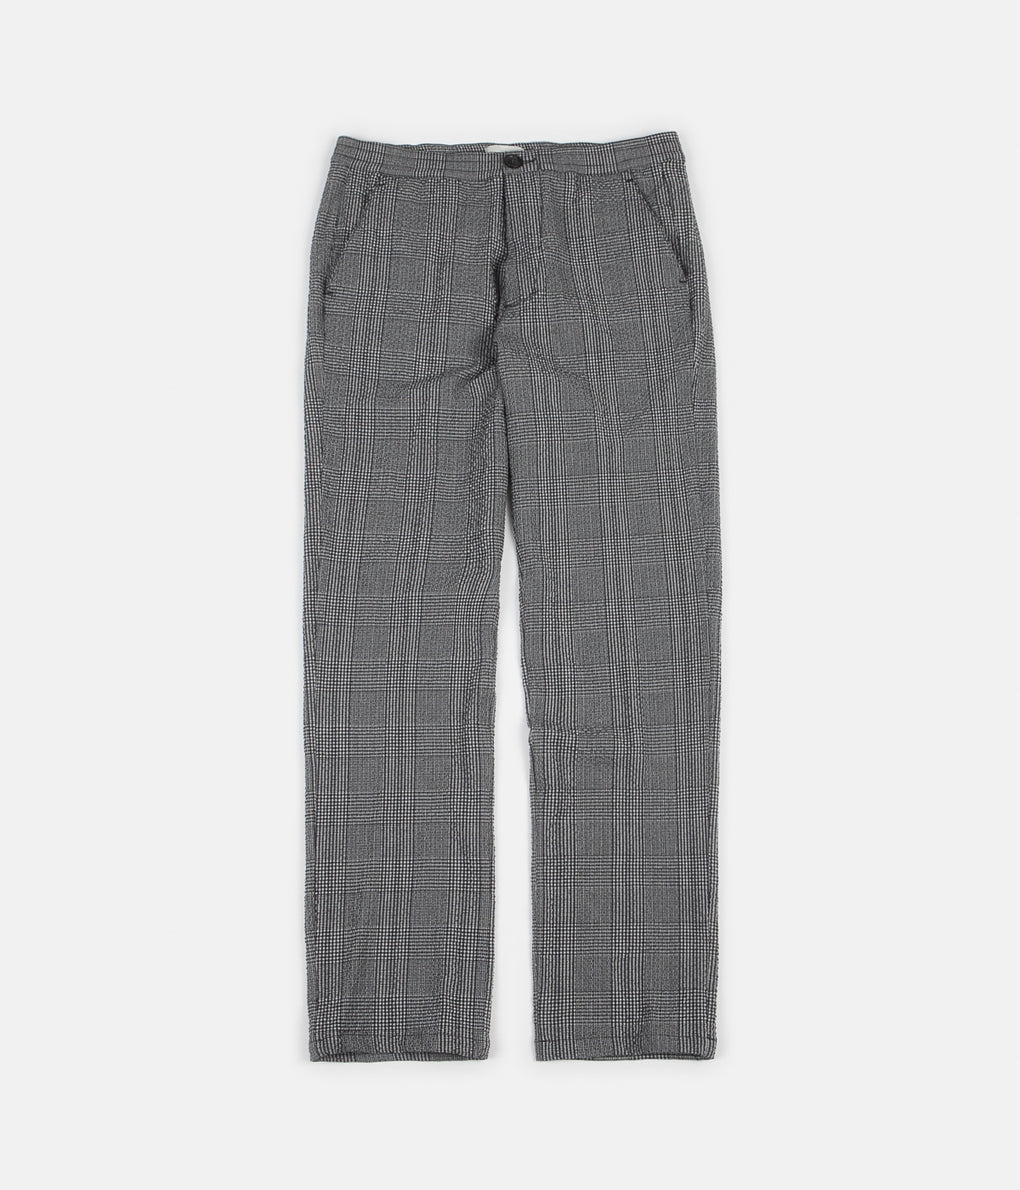 Oliver Spencer Drawstring Trousers - Kemble Blue